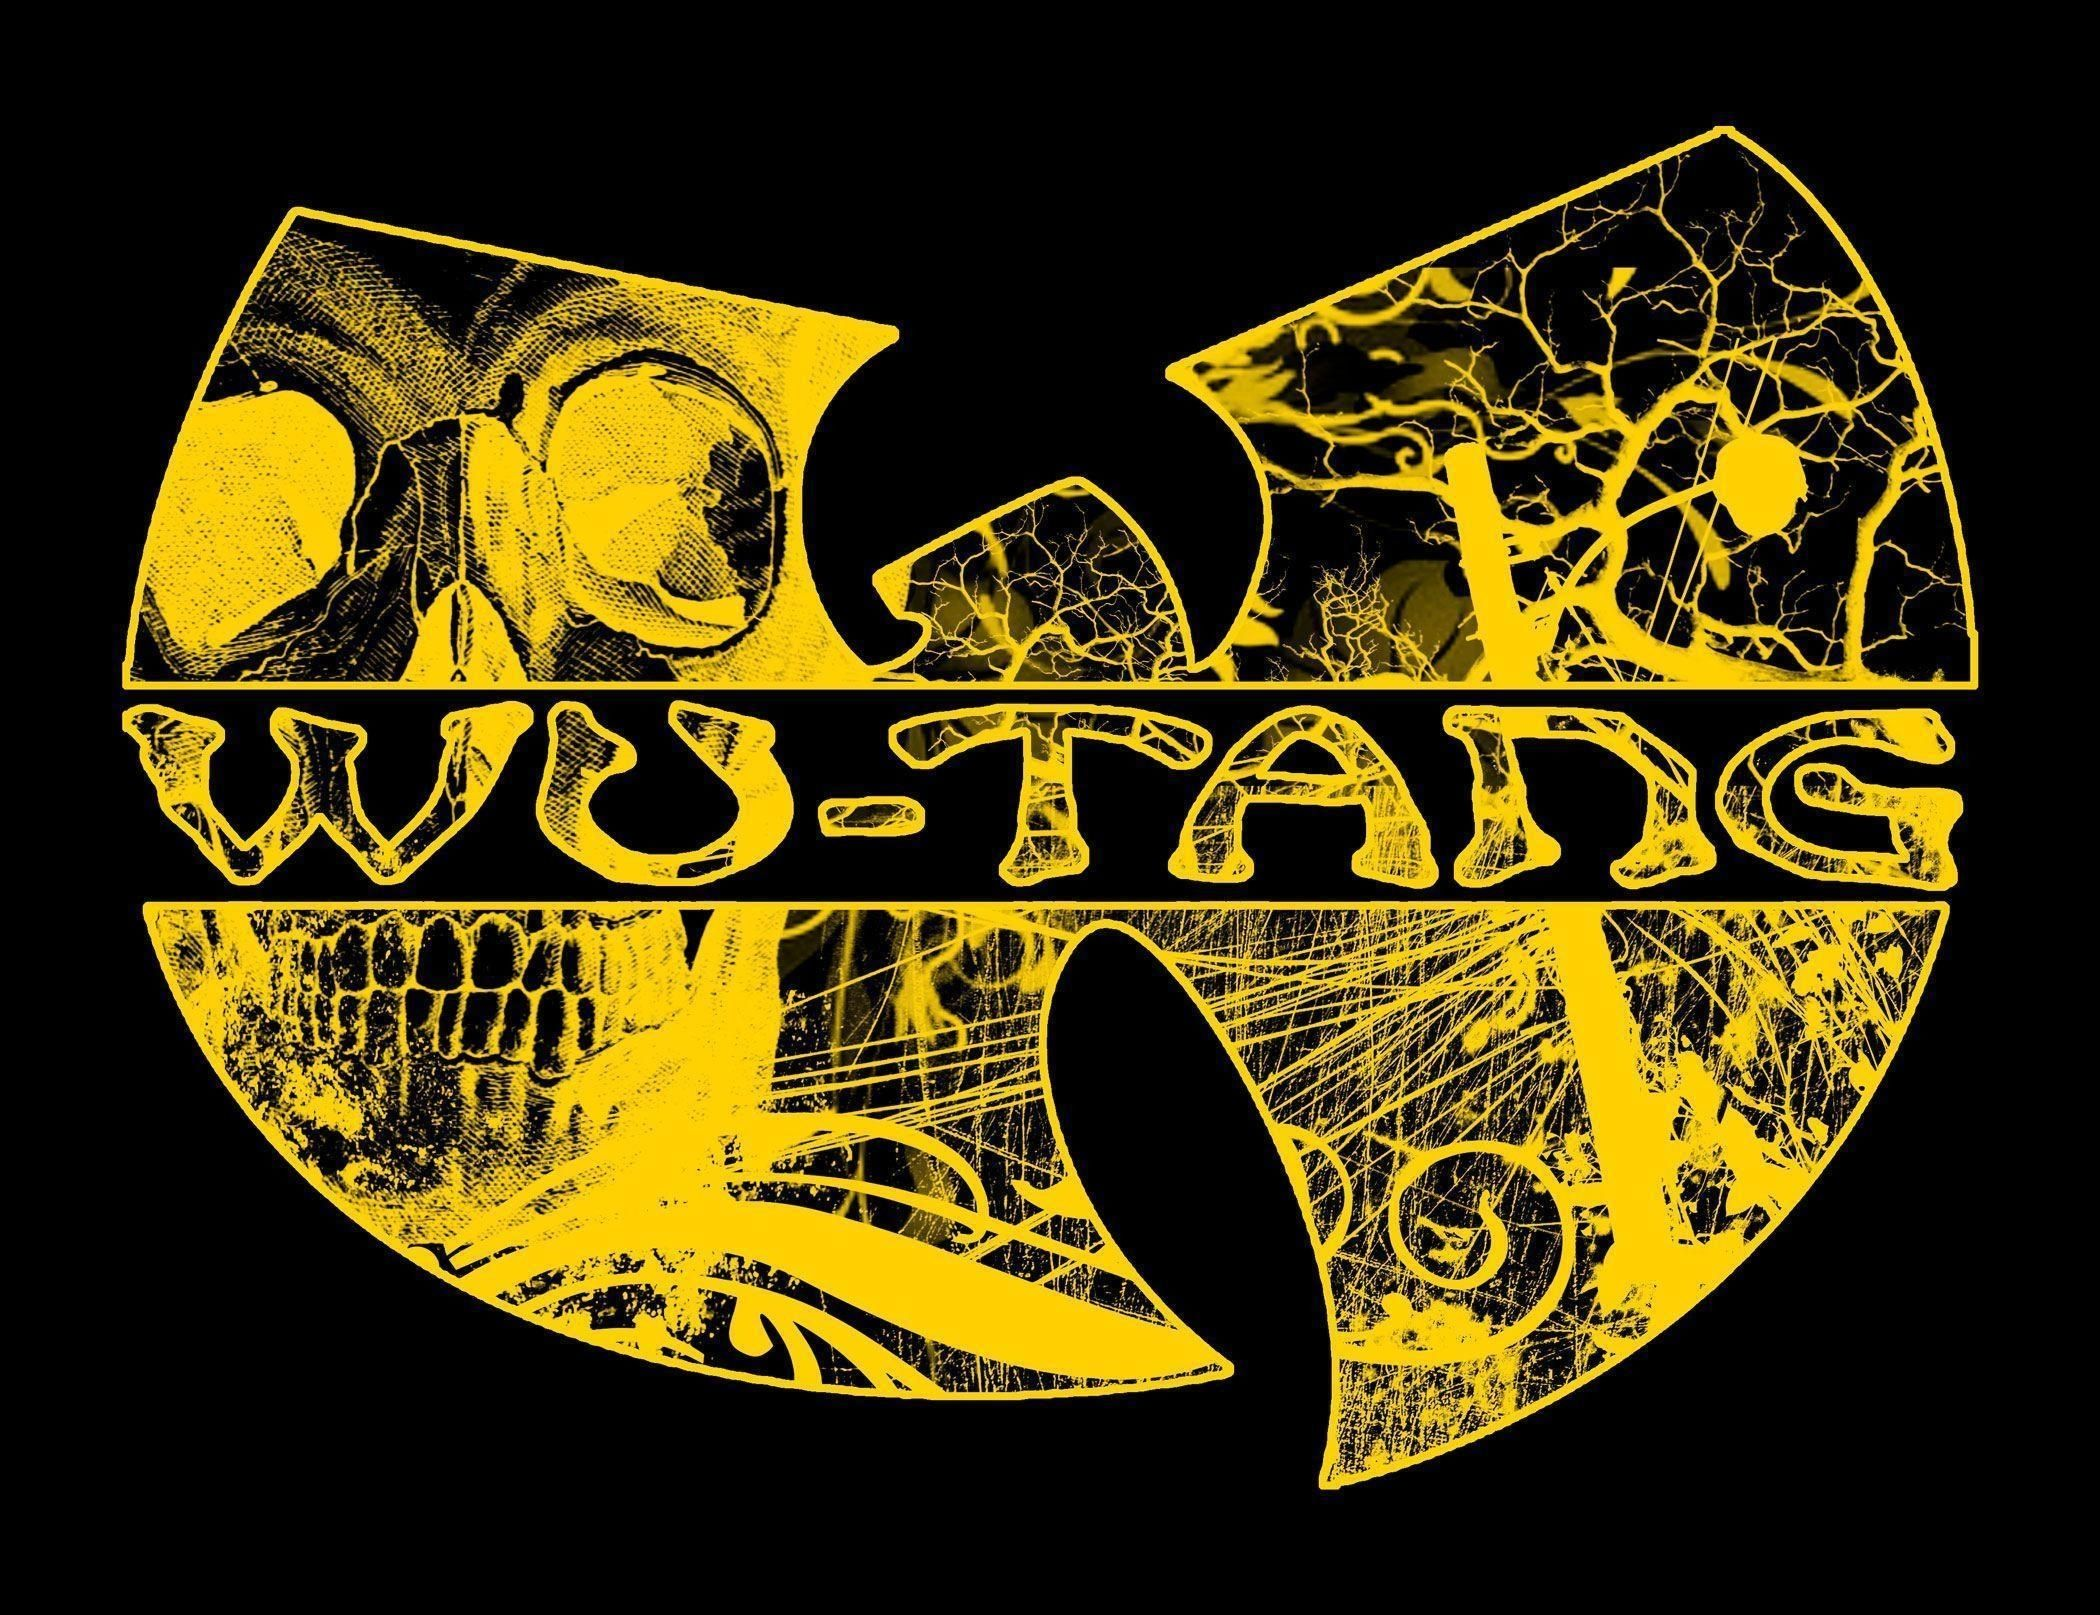 10 Latest Wu Tang Clan Backgrounds Full Hd 1920 1080 For Pc Desktop Wu Tang Clan Logo Wu Tang Clan Wallpaper Wu Tang